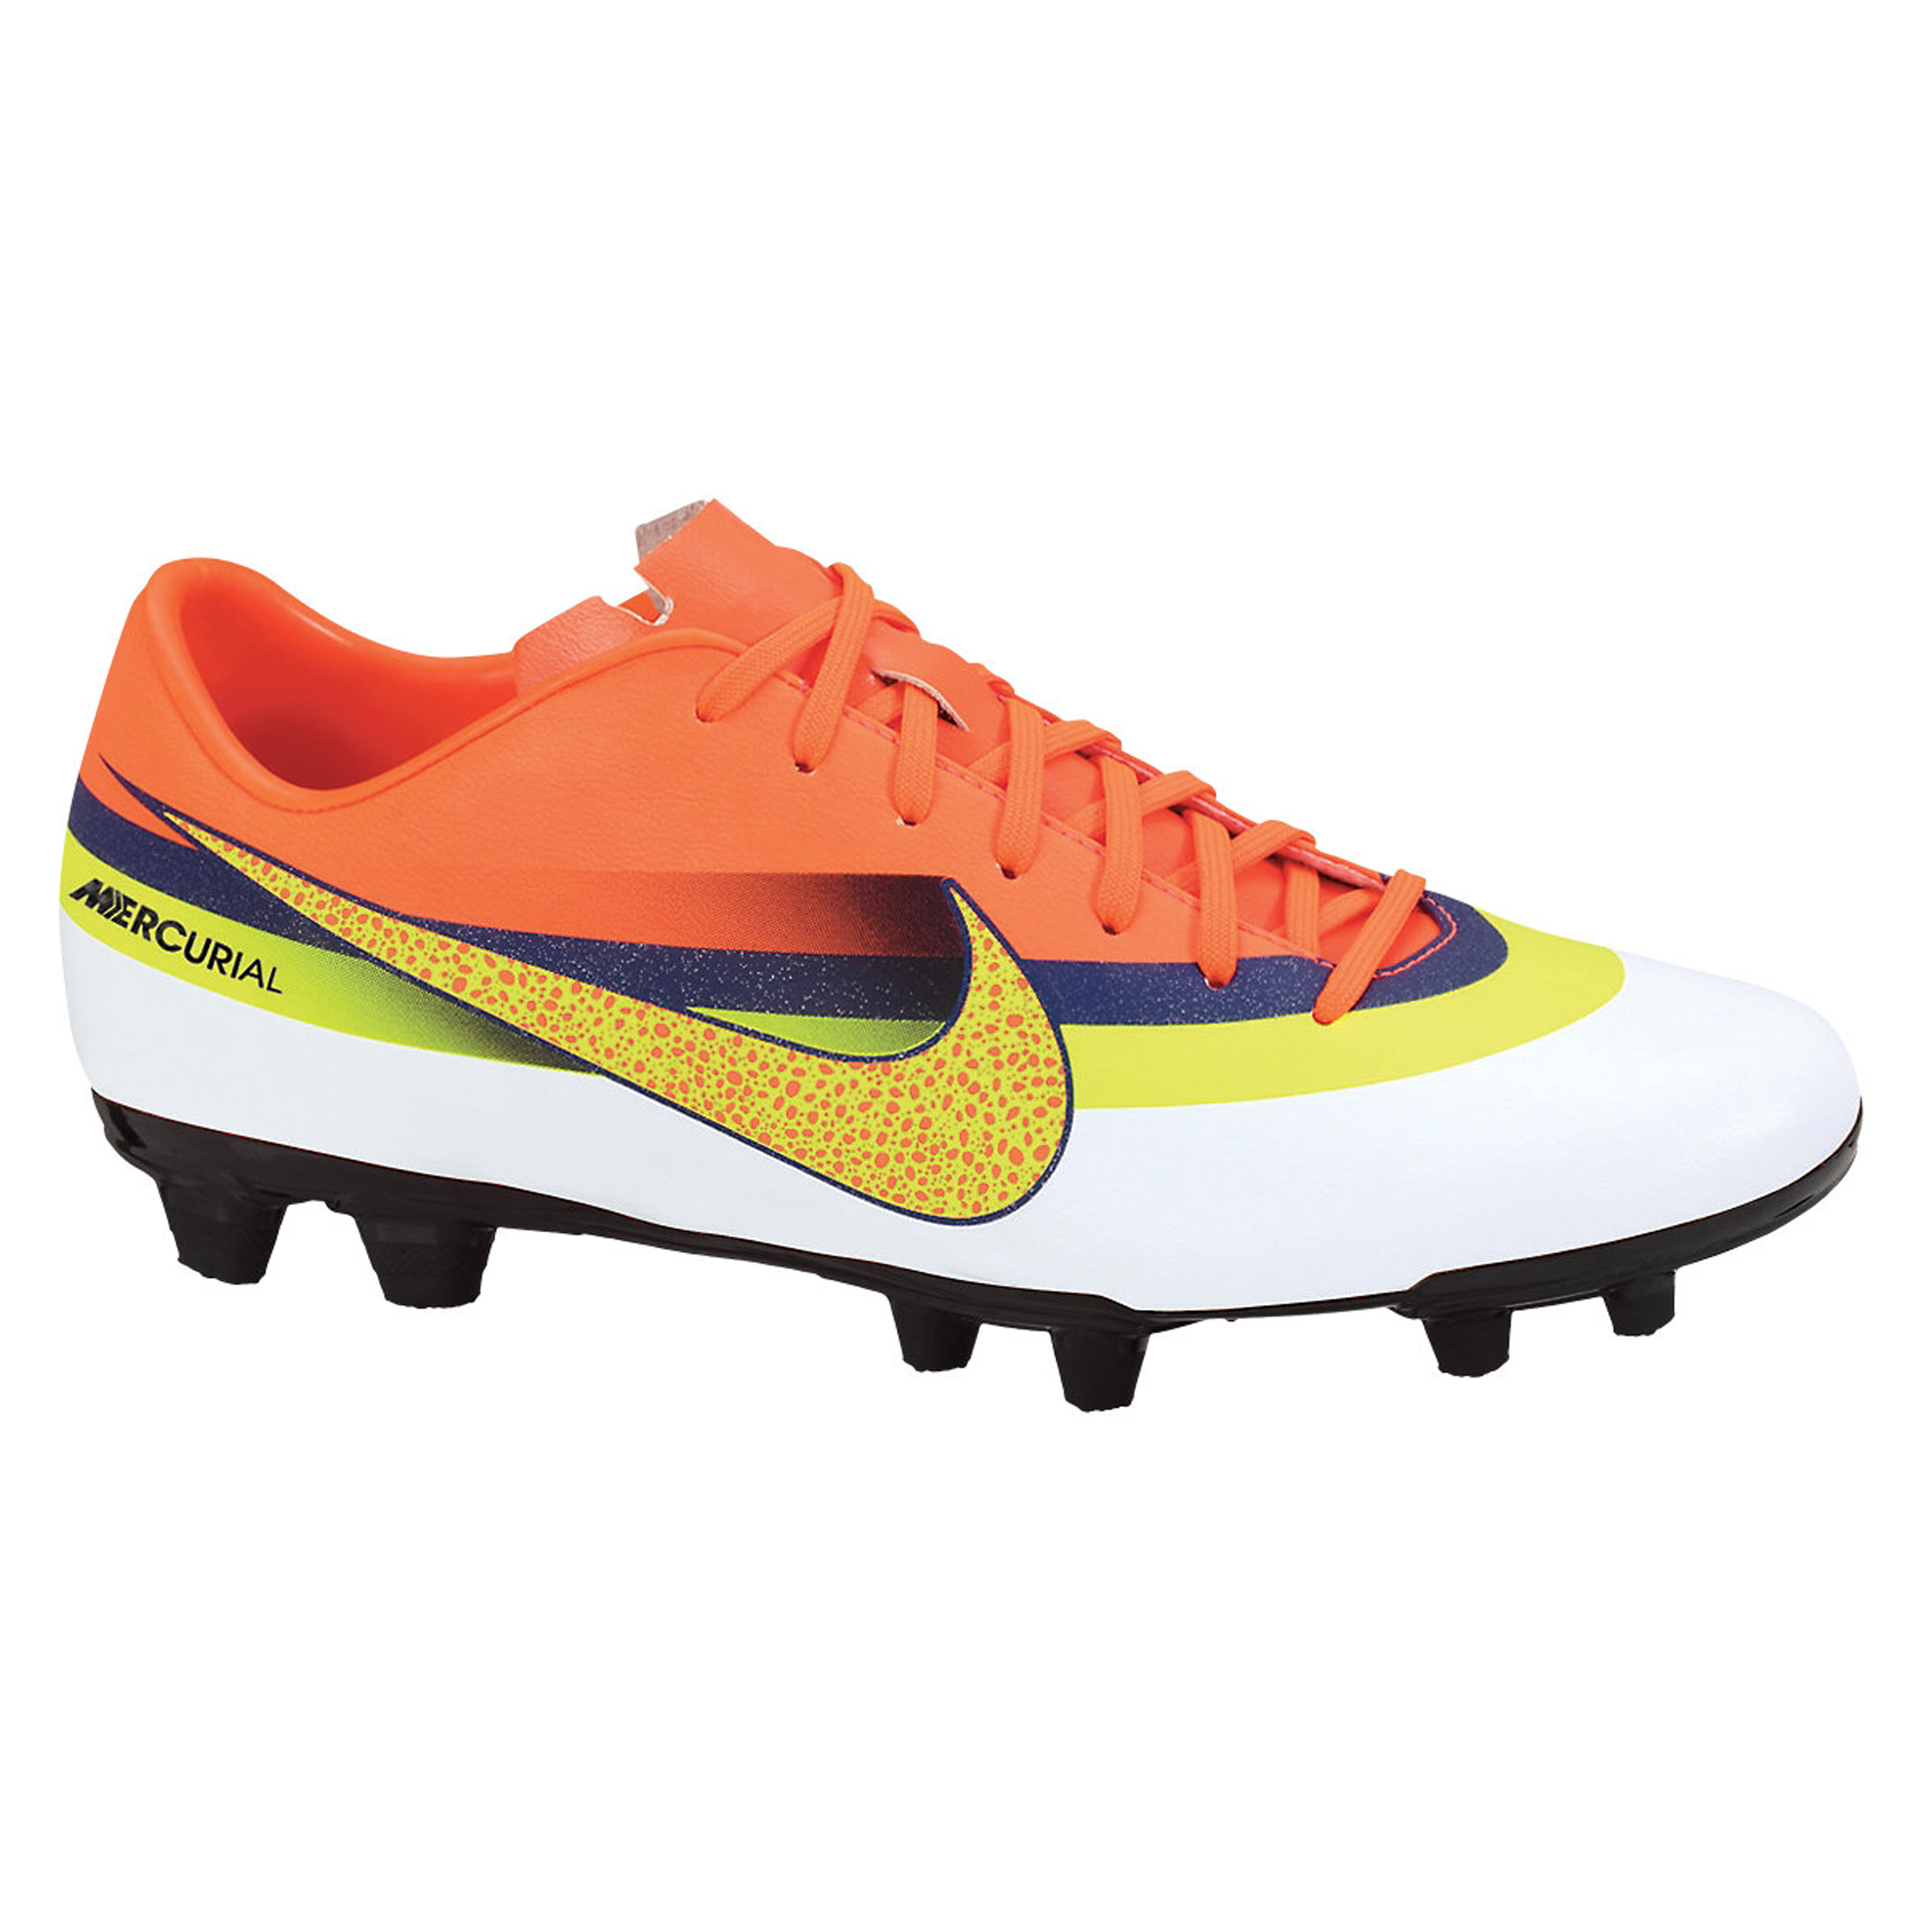 Mercurial Vortex CR7 FG White/Volt/Loyal Blue/Total Crimson